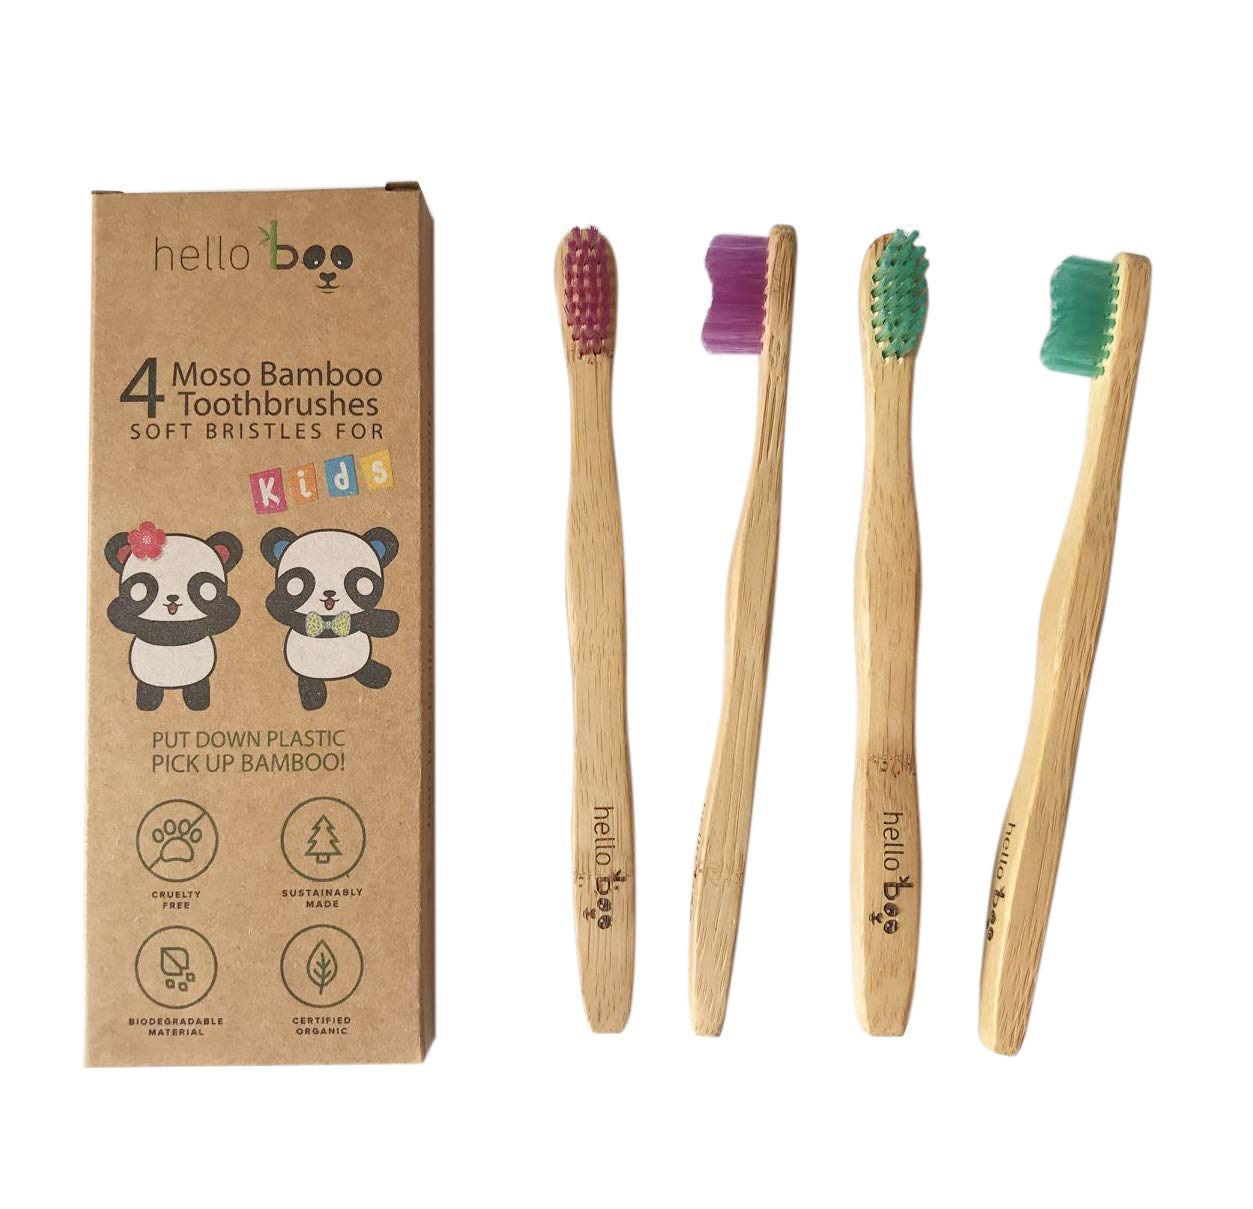 Bamboo Toothbrush for Kids - Pack of 4 Biodegradable Tooth Brush Set - Organic Eco-Friendly Moso Bamboo with Ergonomic Handles & Soft BPA Free Nylon Bristles | By HELLO BOO (Kids)